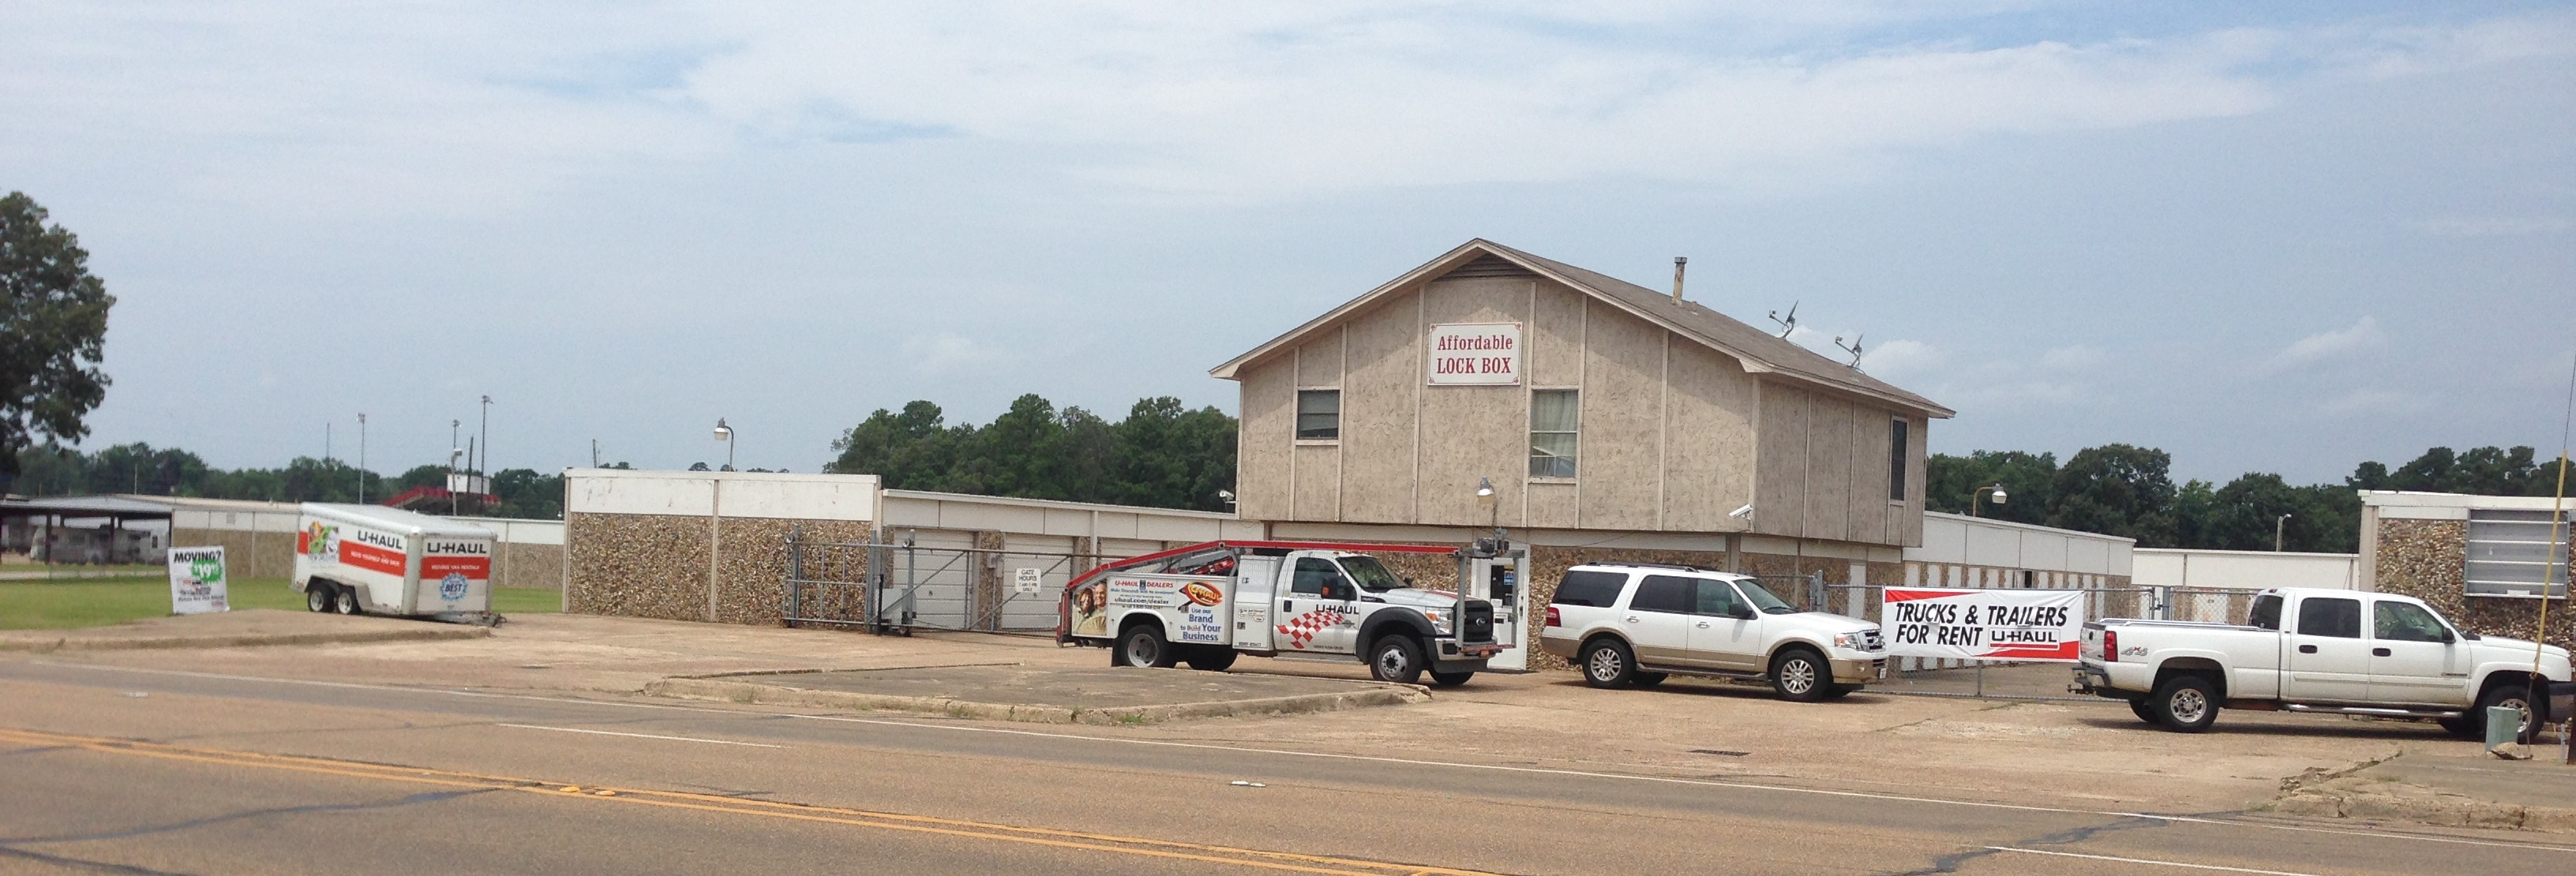 Our self storage units in Texarkana, AR